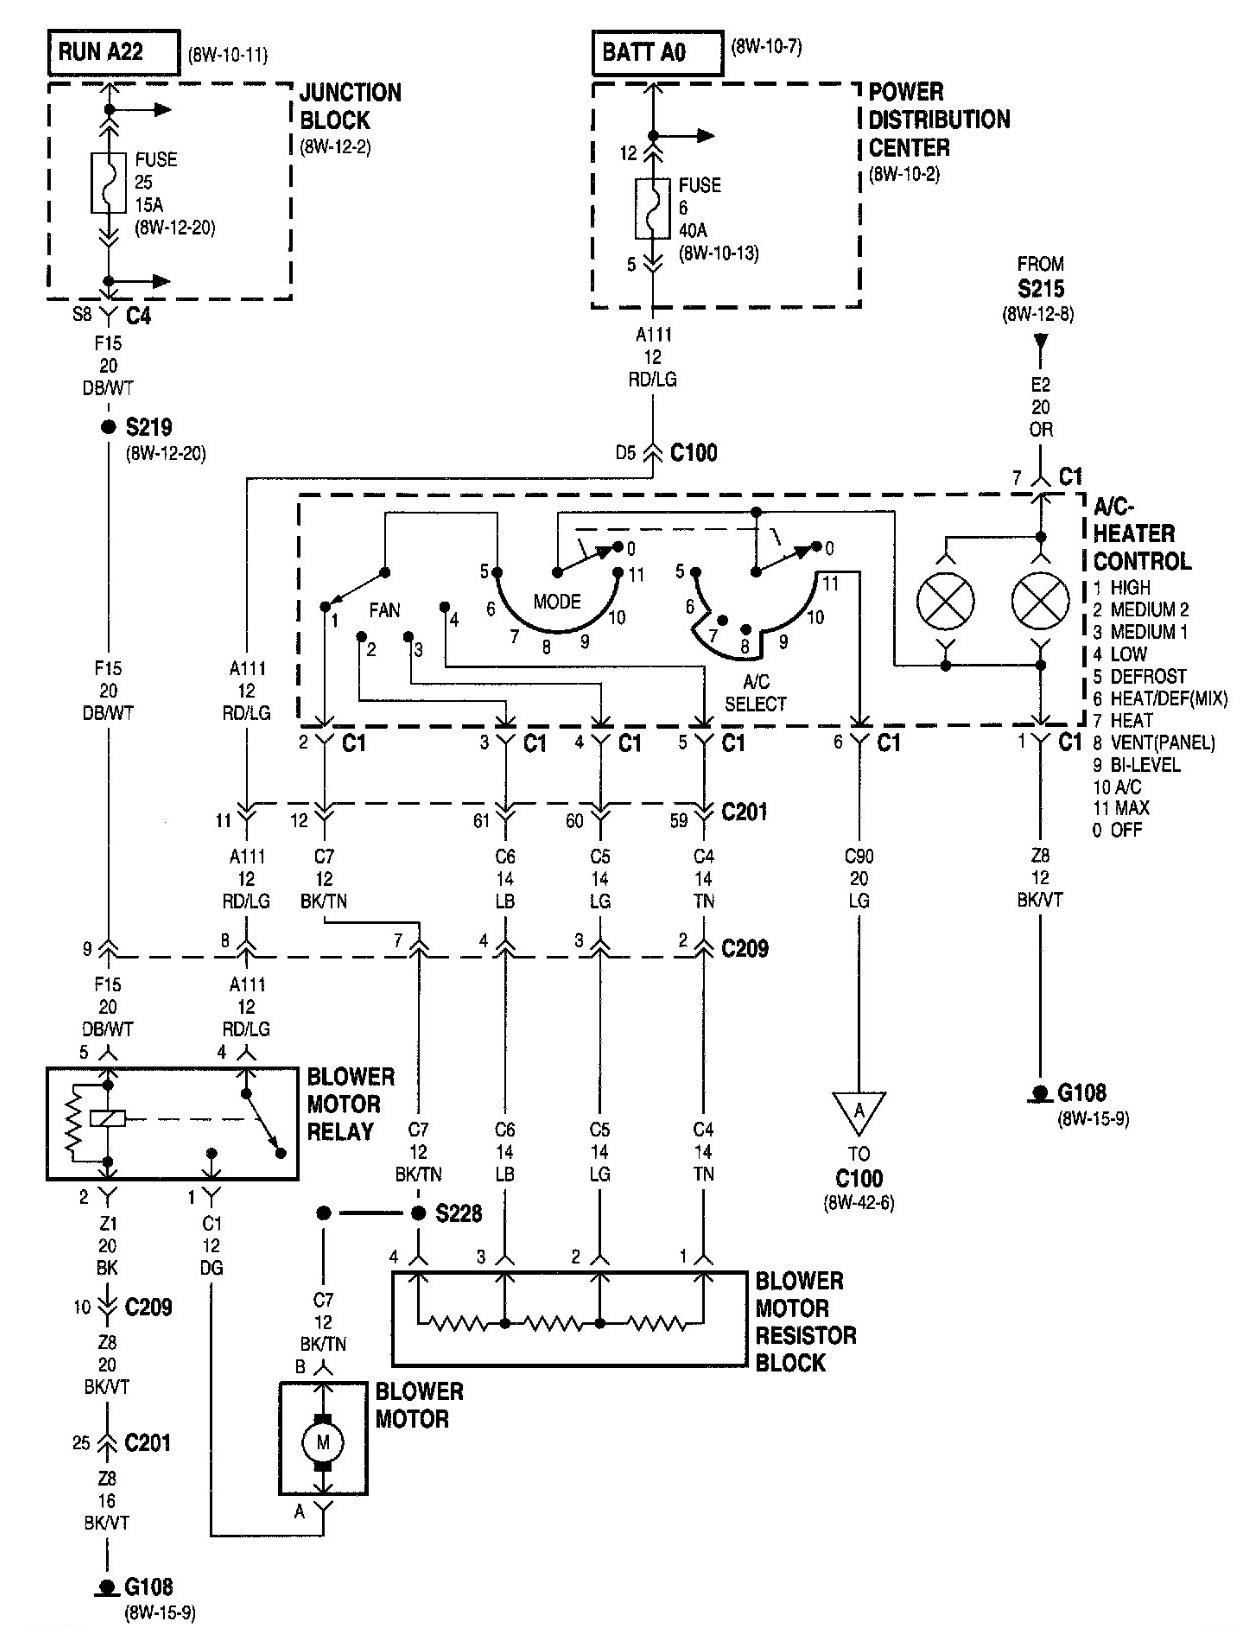 2008 Dodge Charger Wiring Diagram - Mikulskilawoffices - 2008 Dodge Ram Trailer Wiring Diagram